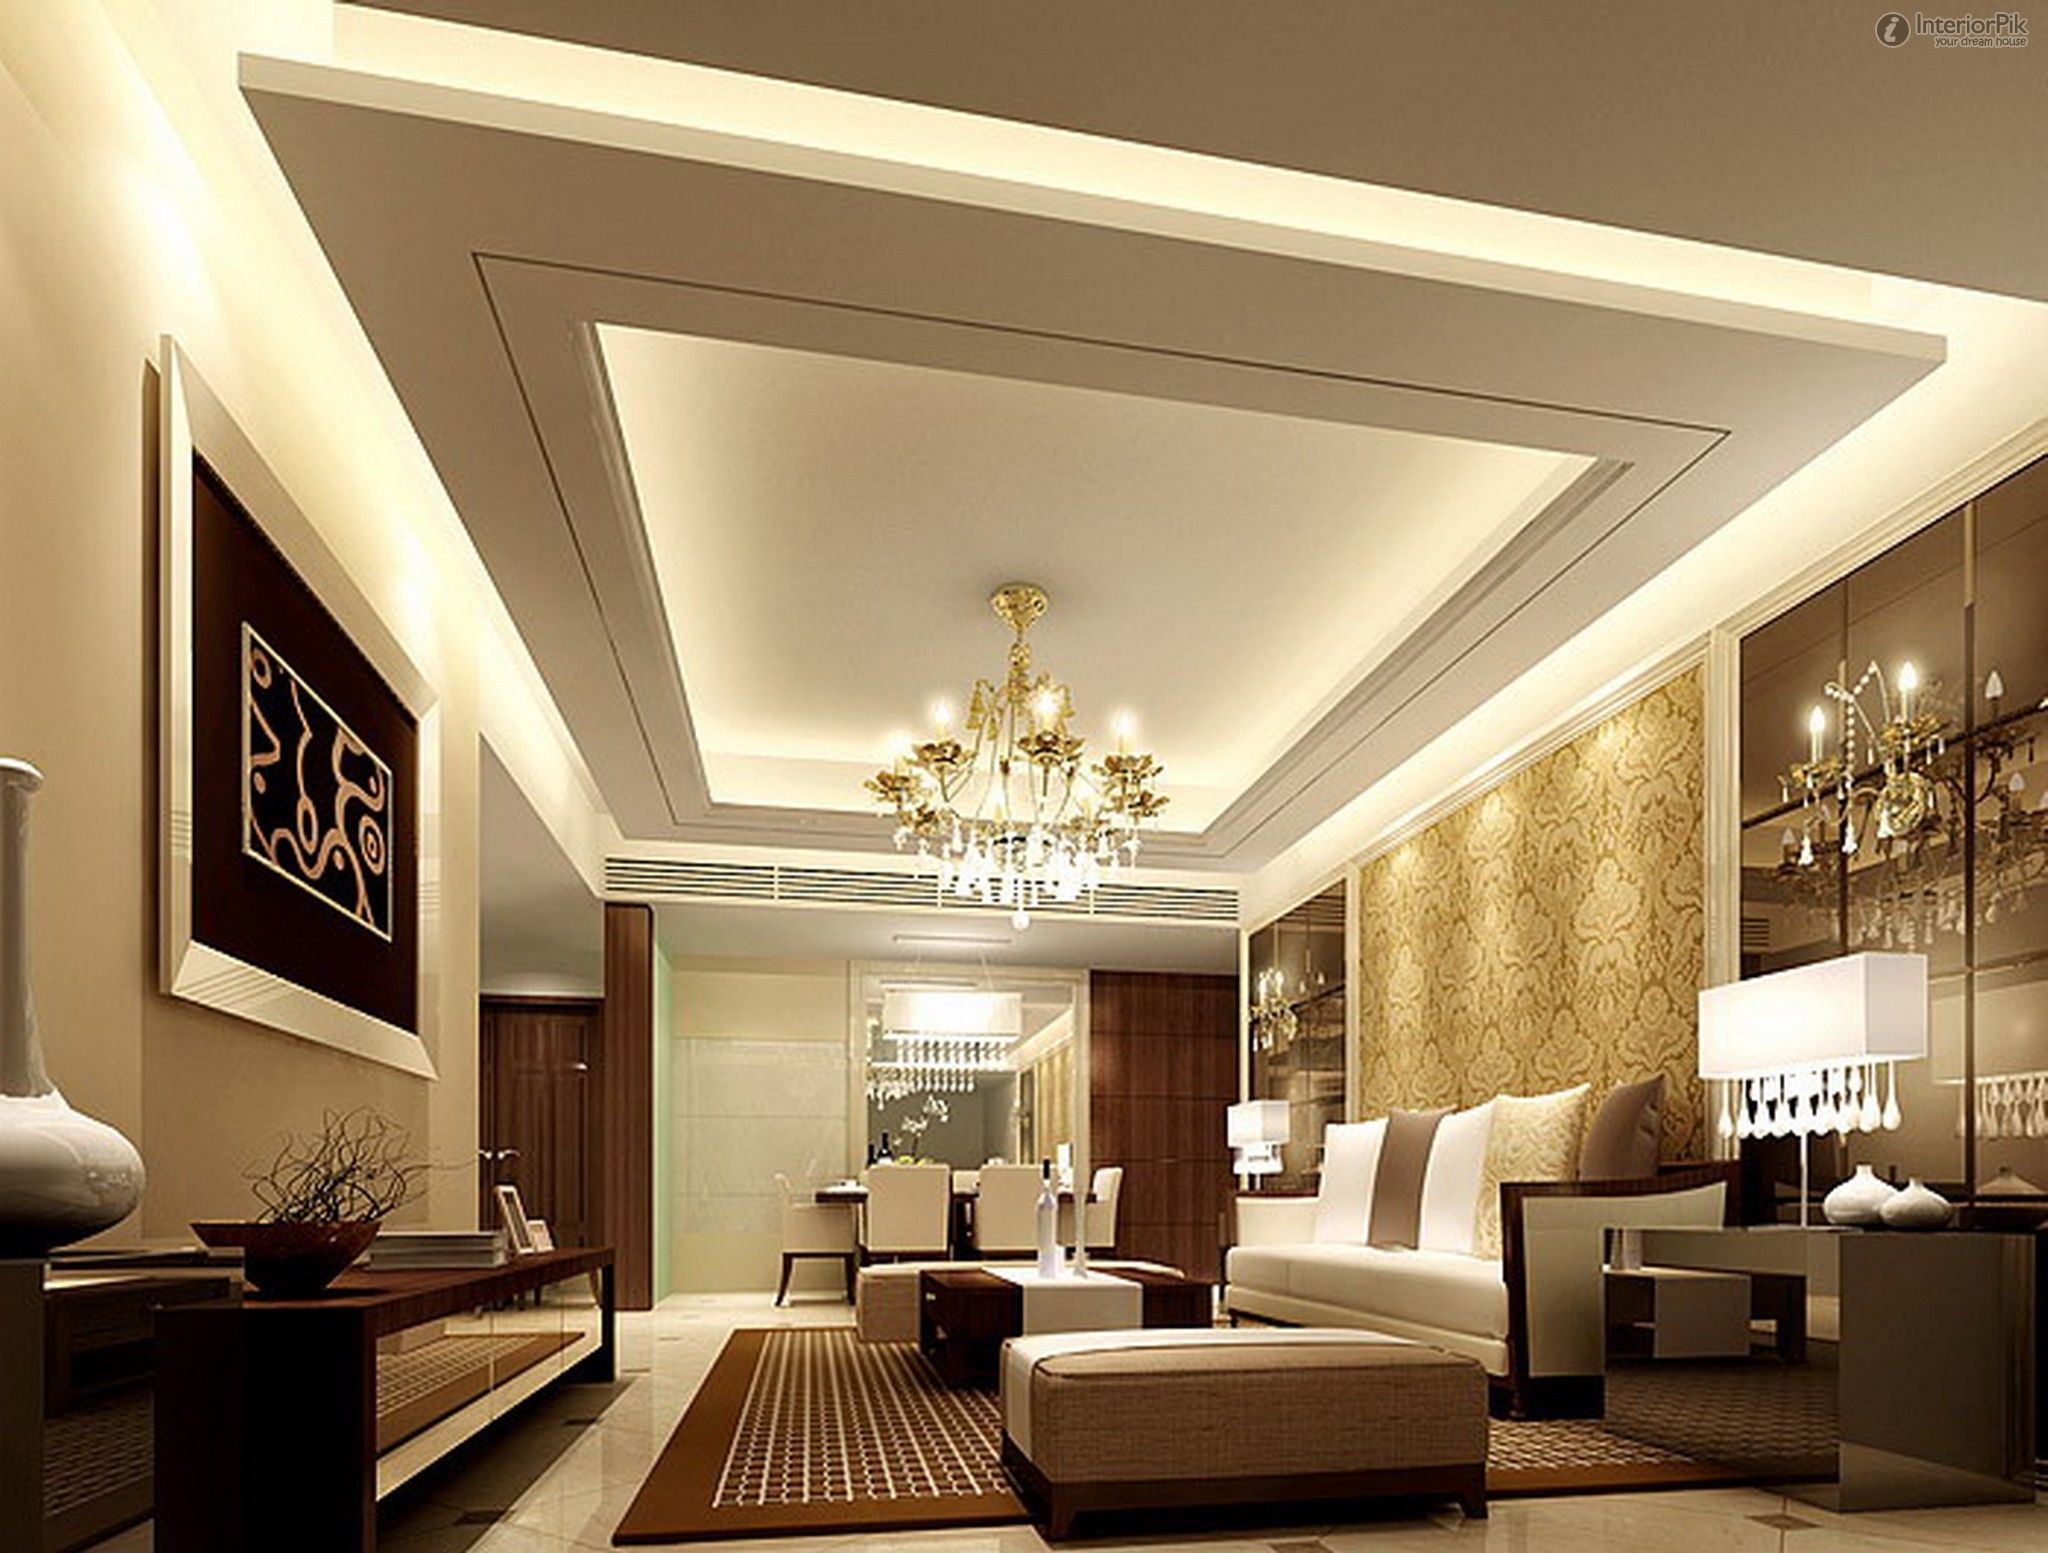 Simple Ceiling Designs For Living Room 25 Best Ideas About Modern Ceiling Design On Pinterest Modern